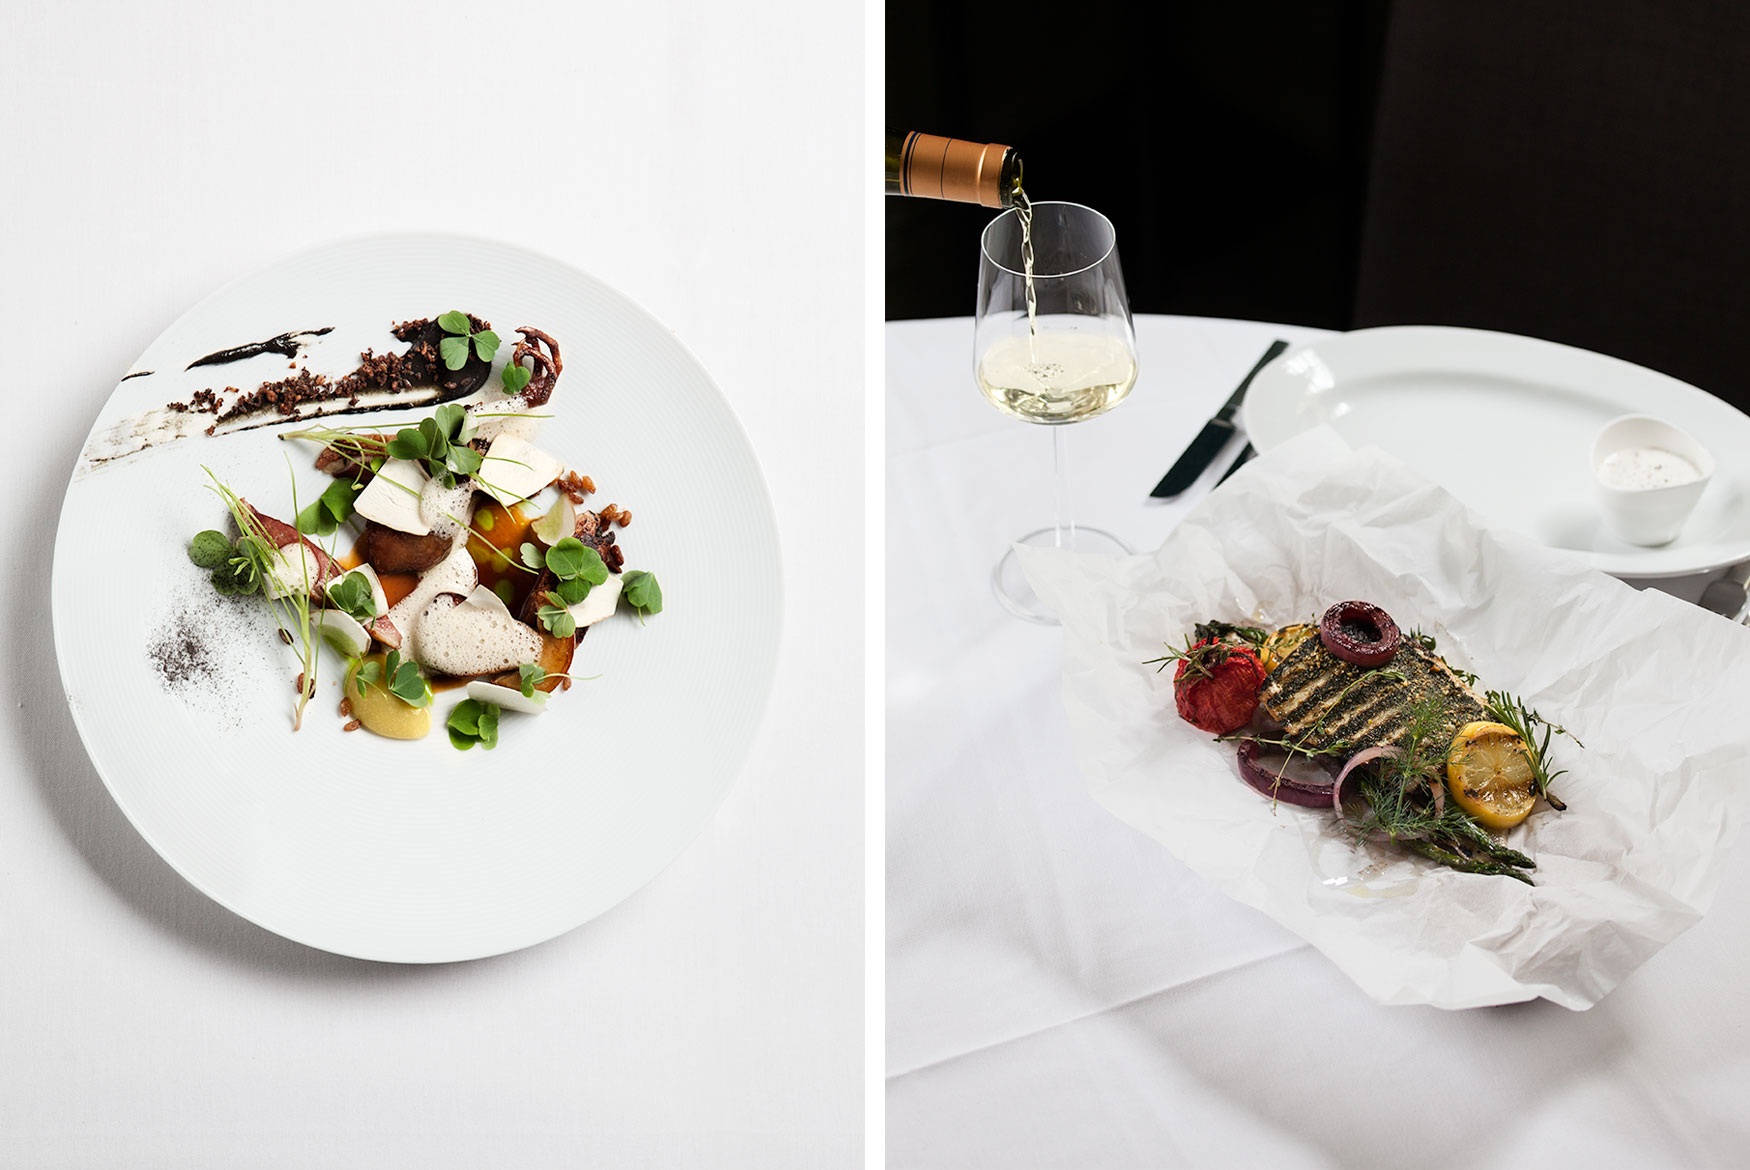 And finally some new food in the  travel  section. The left plate is shot at the Scandinavian restaurant Aquavit in Midtown, NYC. The right one is shot at another Scandinavian institution, The Maidstone in East Hampton, NY. (And yes, I had to eat both dishes, and yes the food was fantastic!)